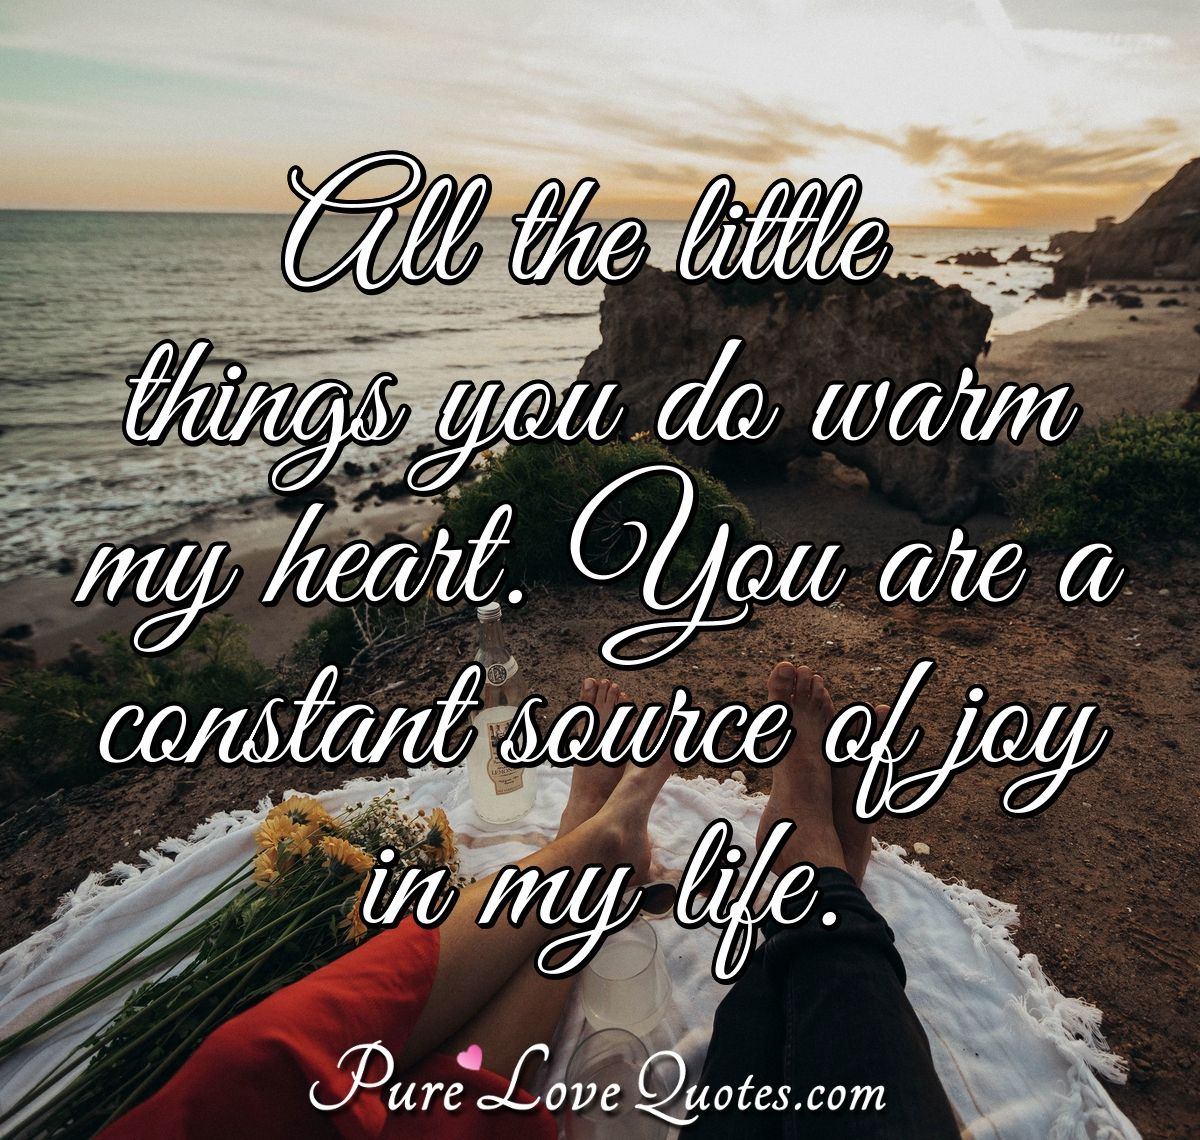 All the little things you do warm my heart. You are a constant source of joy in my life. - Anonymous